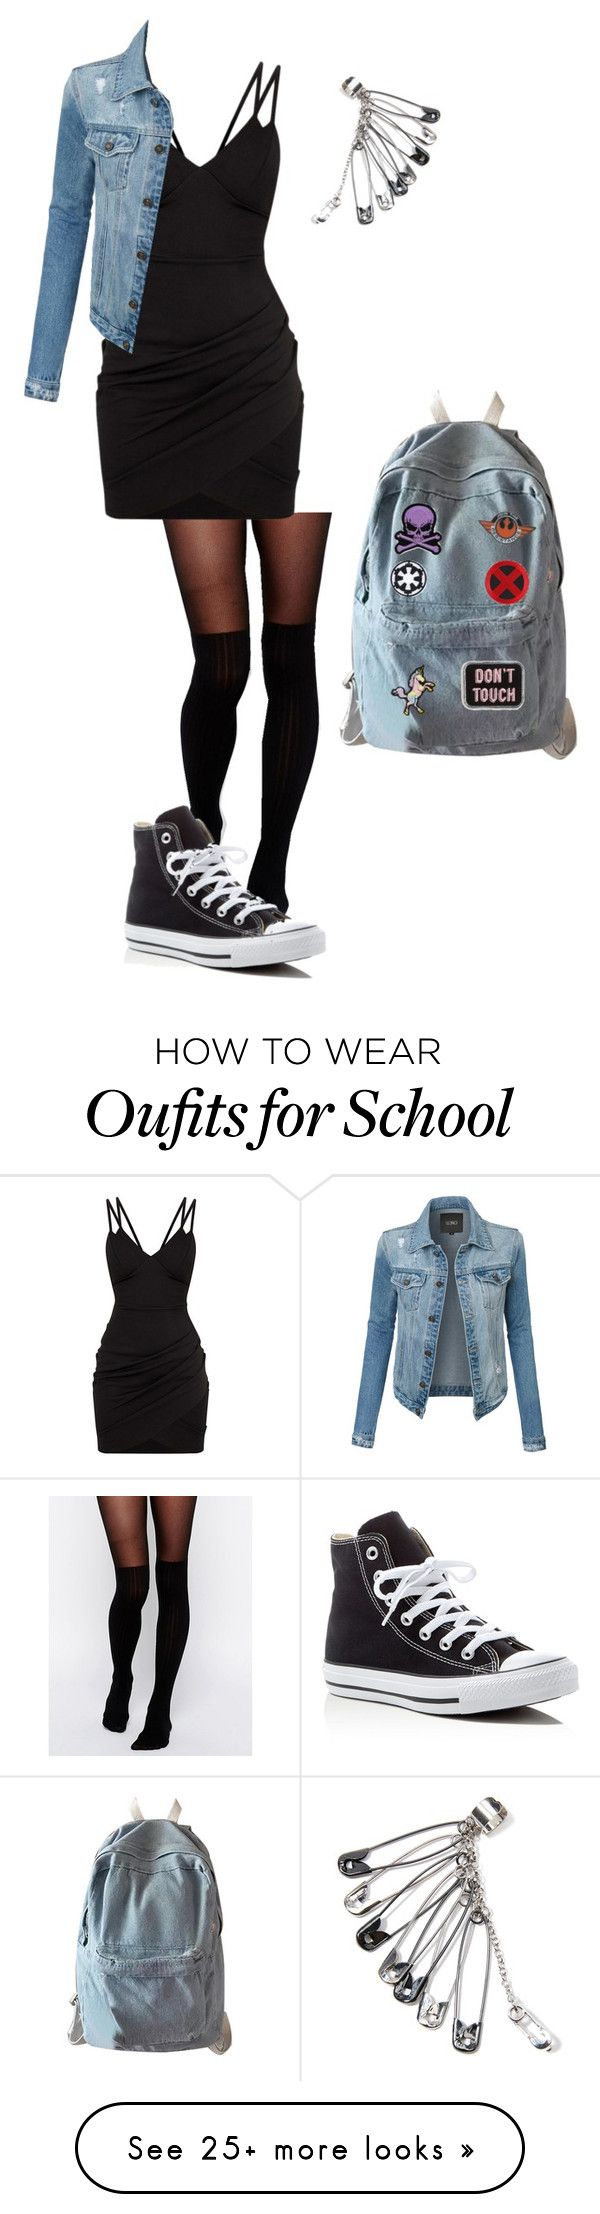 """Whatever..."" by the-whitewolf on Polyvore featuring ASOS, LE3NO, Converse, WithChic, Ankit, Disney, Hot Topic, Stoney Clover Lane and Logophile"